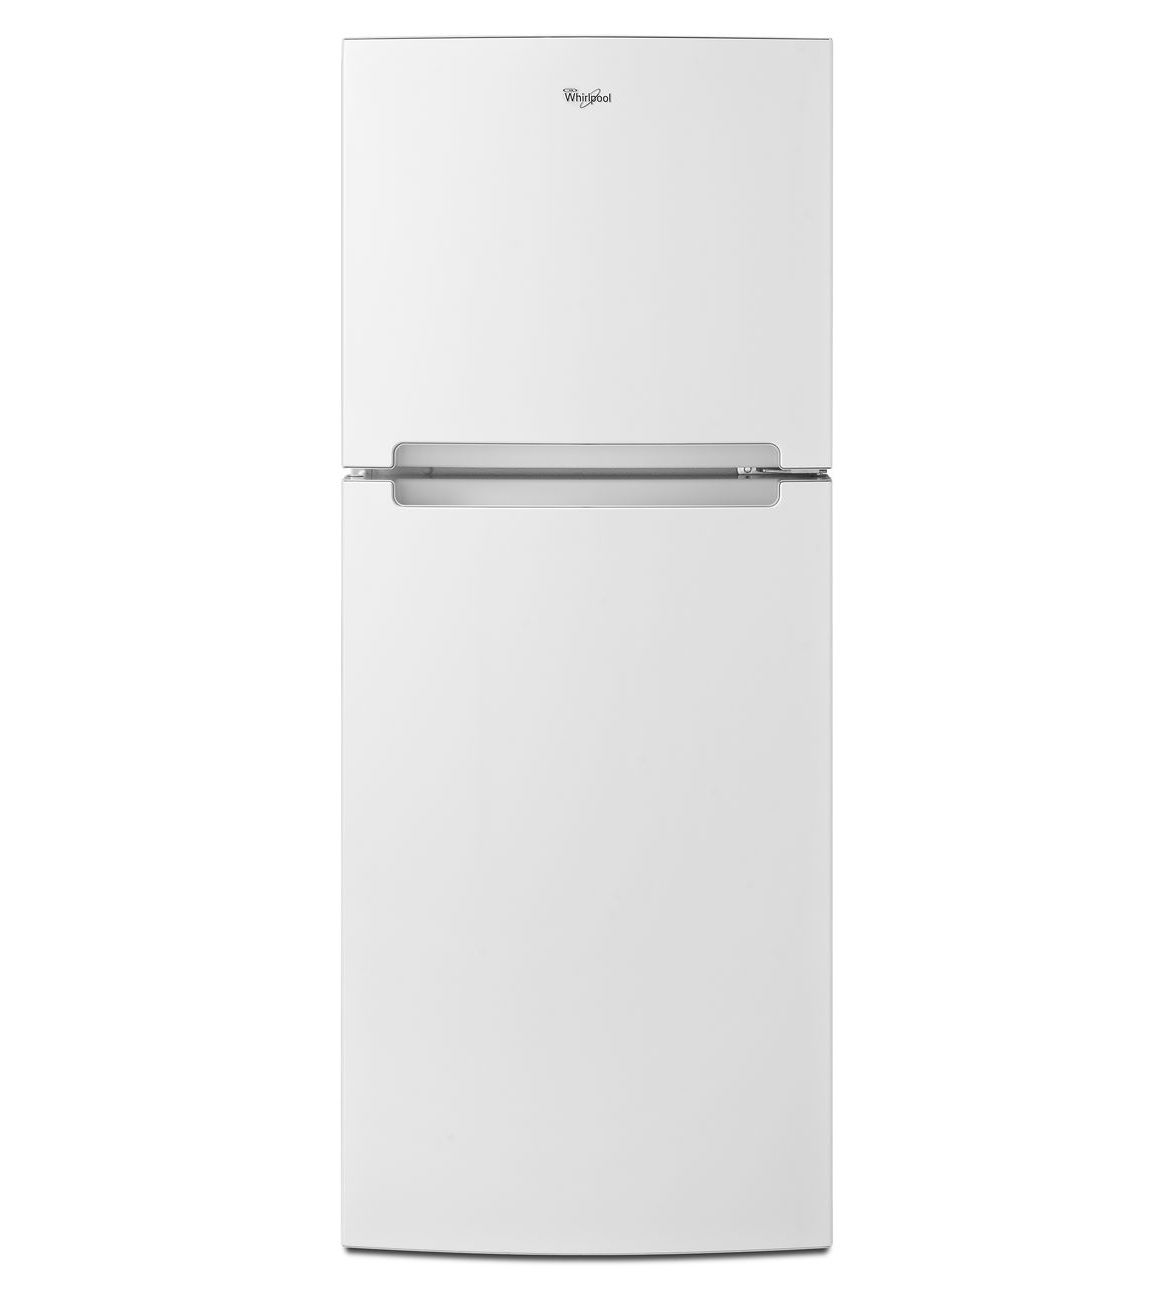 Whirlpool 25 Inches Wide Top Freezer Refrigerator More